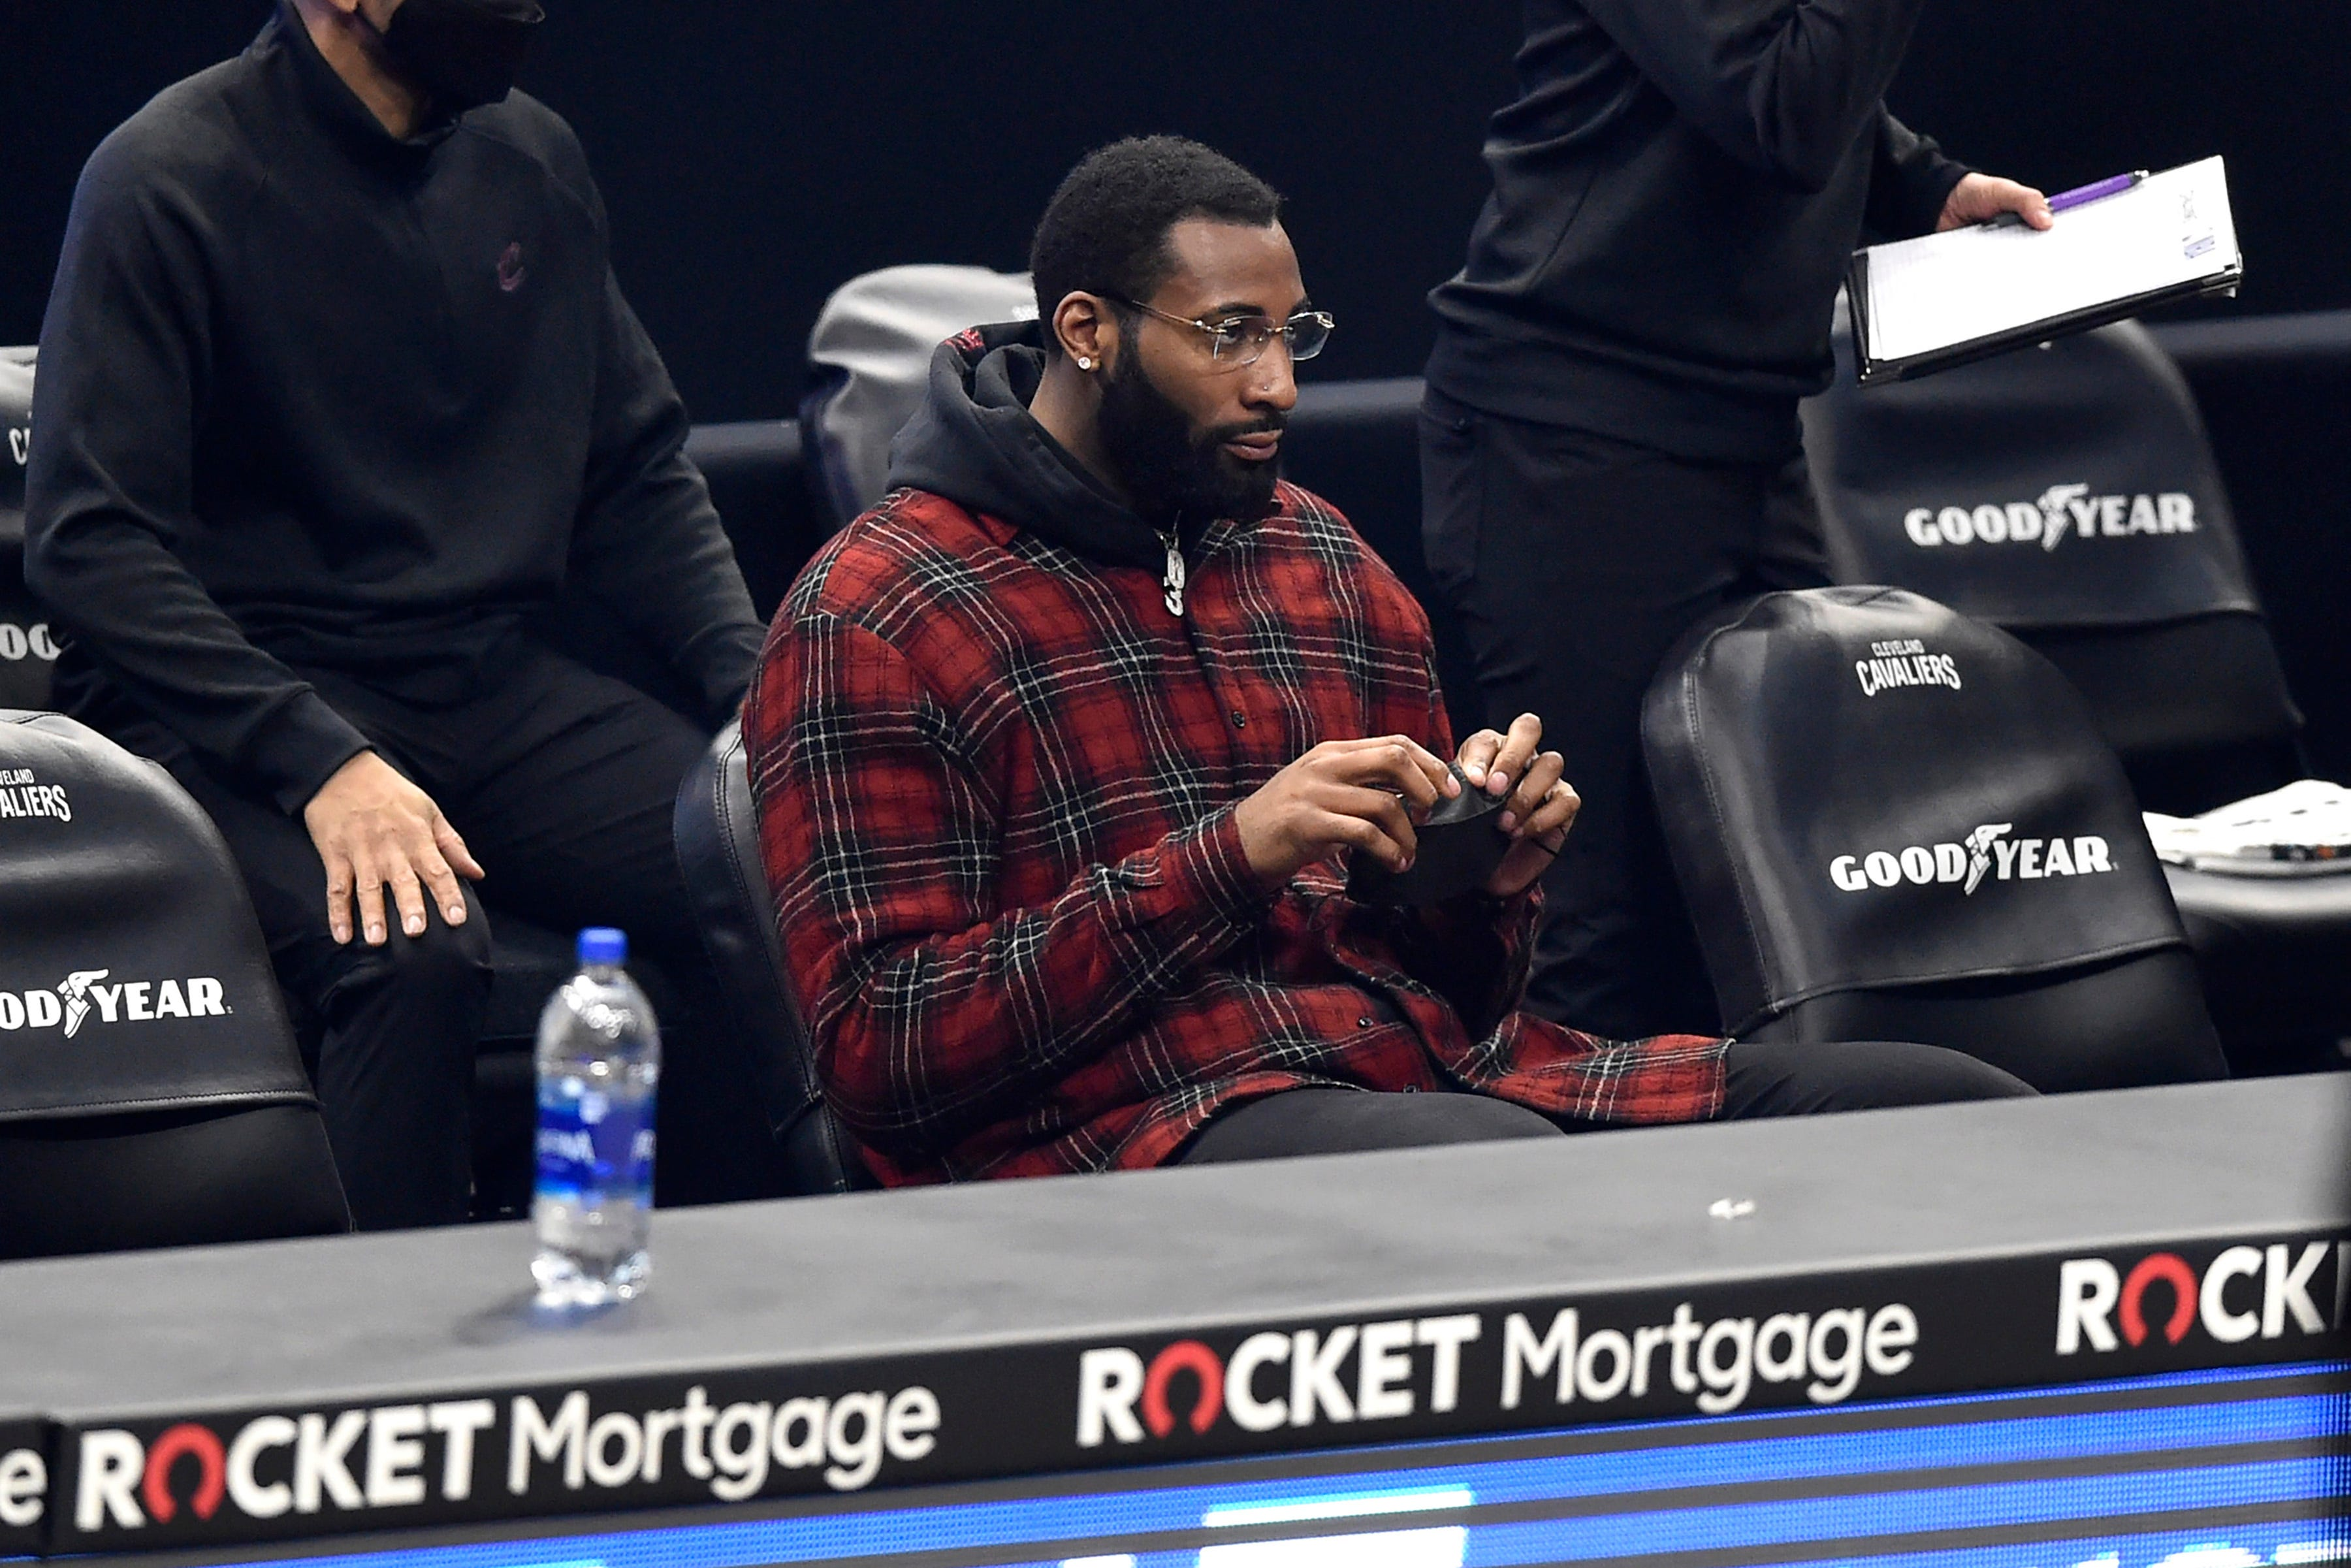 Sports Cavs, Andre Drummond reach long-awaited buyout agreement - 92.3 The Fan